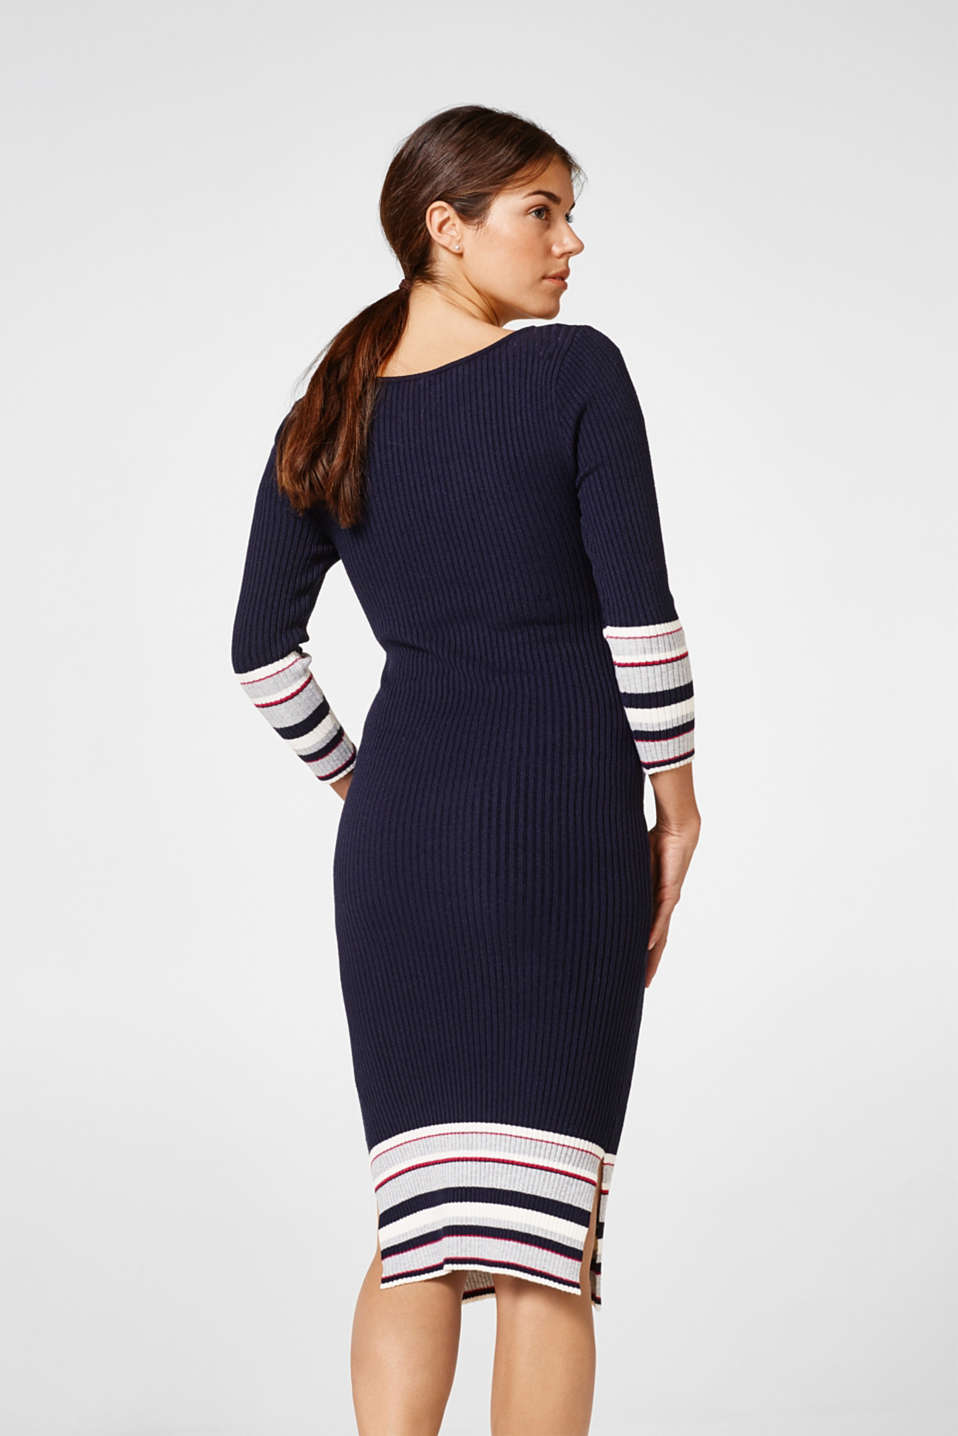 Rib knit dress with stripes